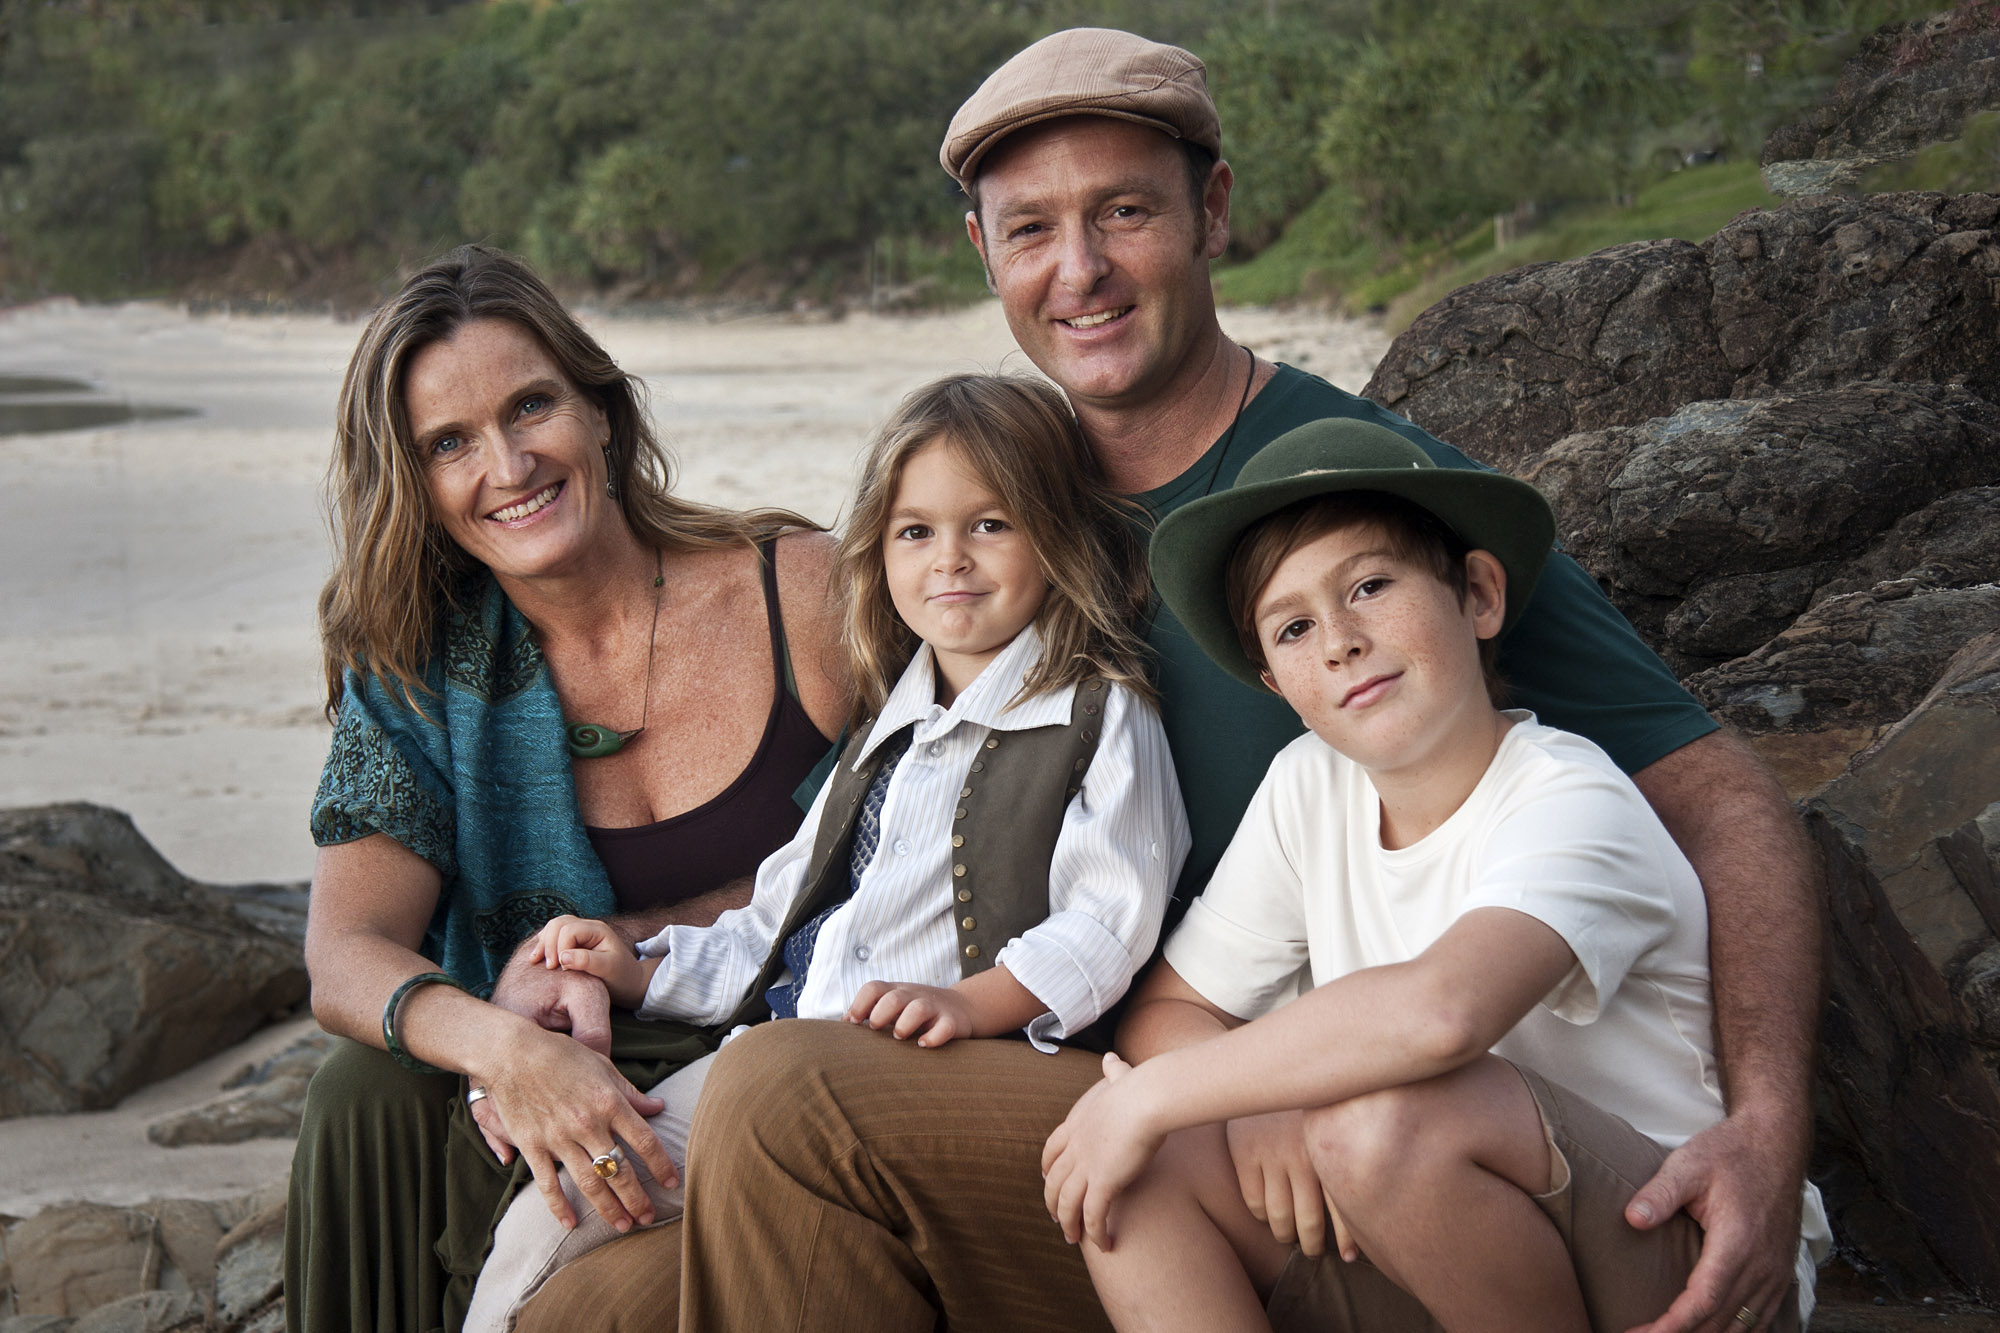 """""""Our afternoon with Gretchen at Wategos beach was so much fun! Gretchen's easy non-invasive direction worked magic. It was the perfect way to capture a moment in time that will be treasured for lifetimes. We completely recommend Gretchen Hambly Photography for your next family shots or special vacation photos when visiting Byron Bay."""" Leone, Byron Bay"""